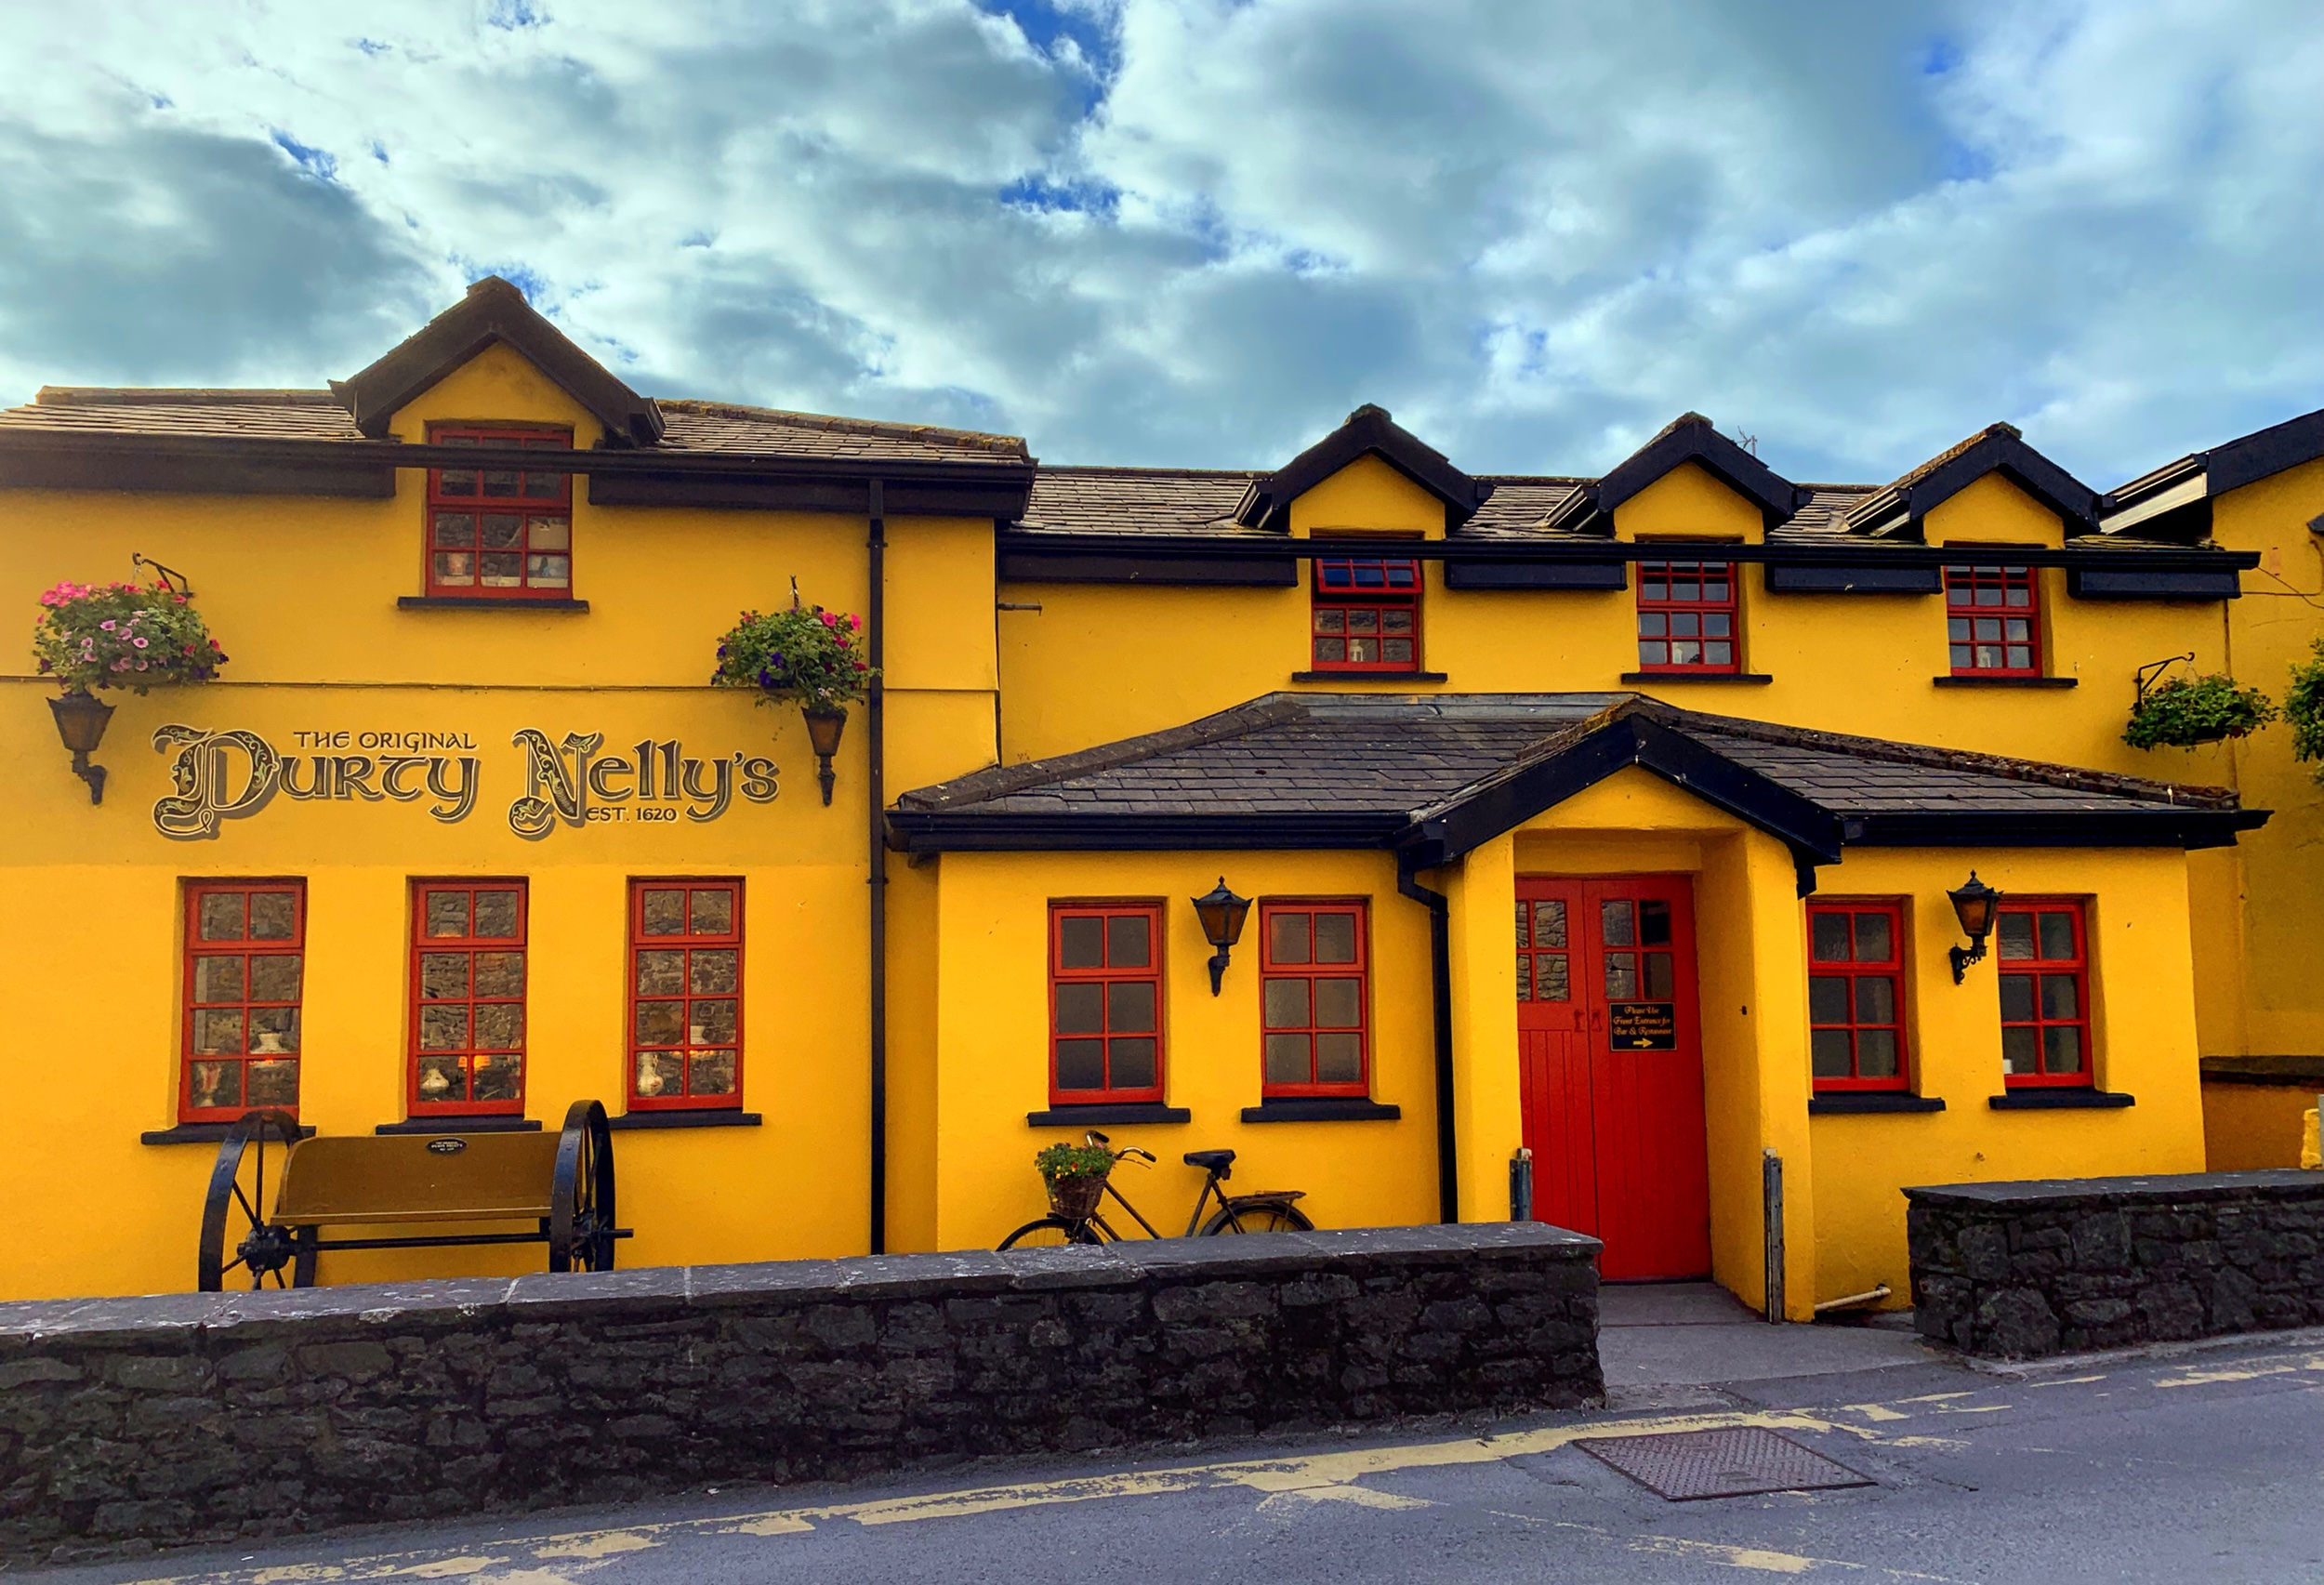 May 31, 2019 - Durty Nelly's, Bunratty Castle,  Bunratty West, County Clare, Ireland.